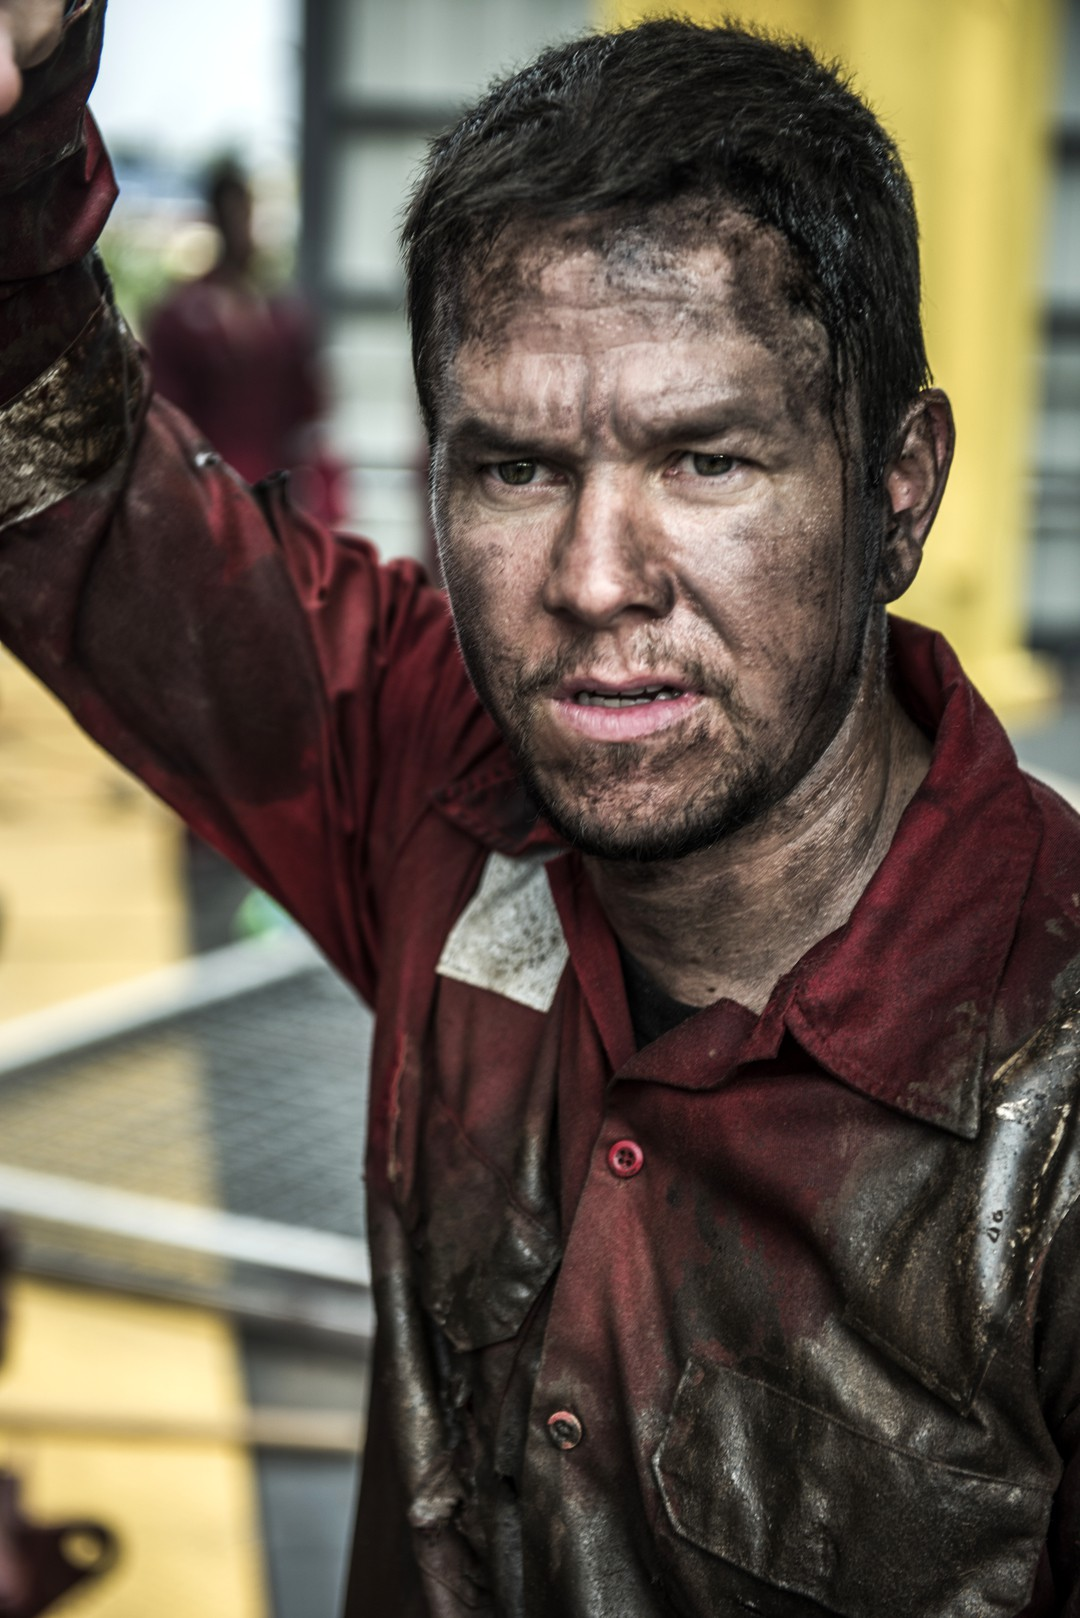 Deepwater Horizon - Behind-the-Scenes Clips - Bild 23 von 23